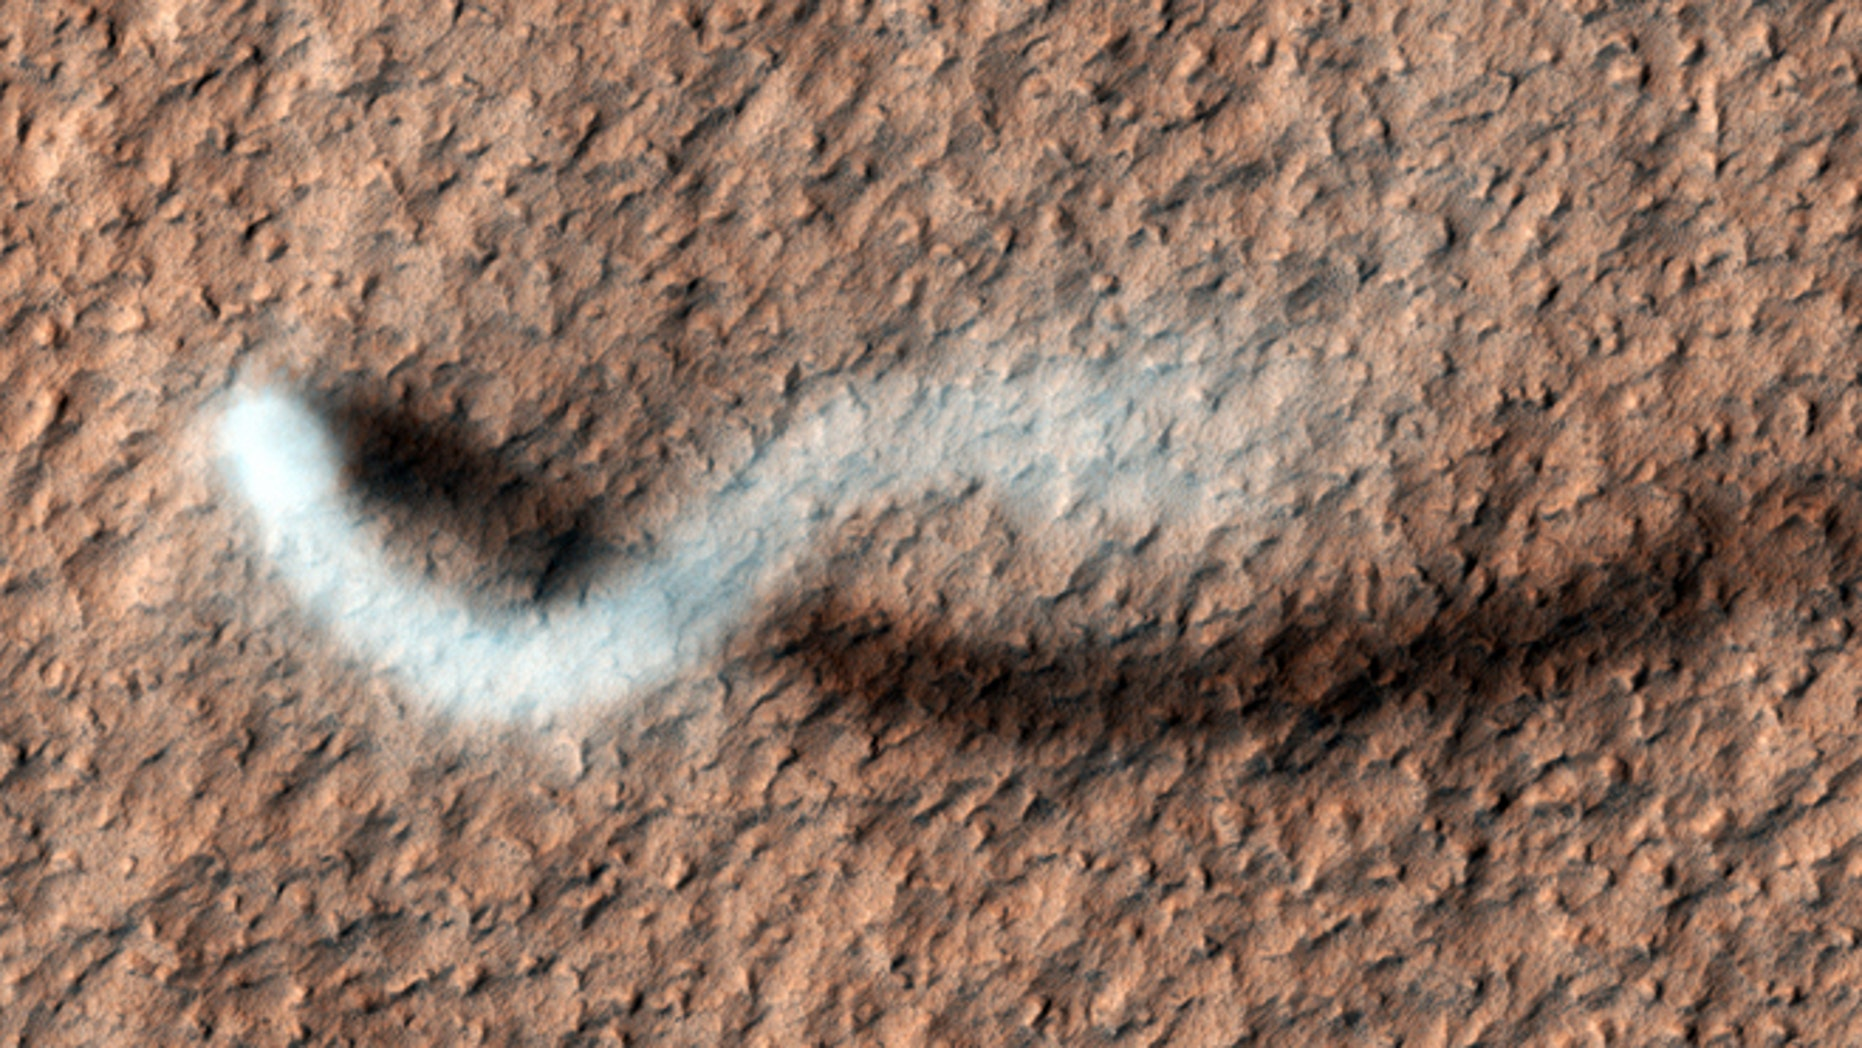 A towering dust devil casts a serpentine shadow over the Martian surface in this stunning, late springtime image captured recently by NASA. But how would it sound?